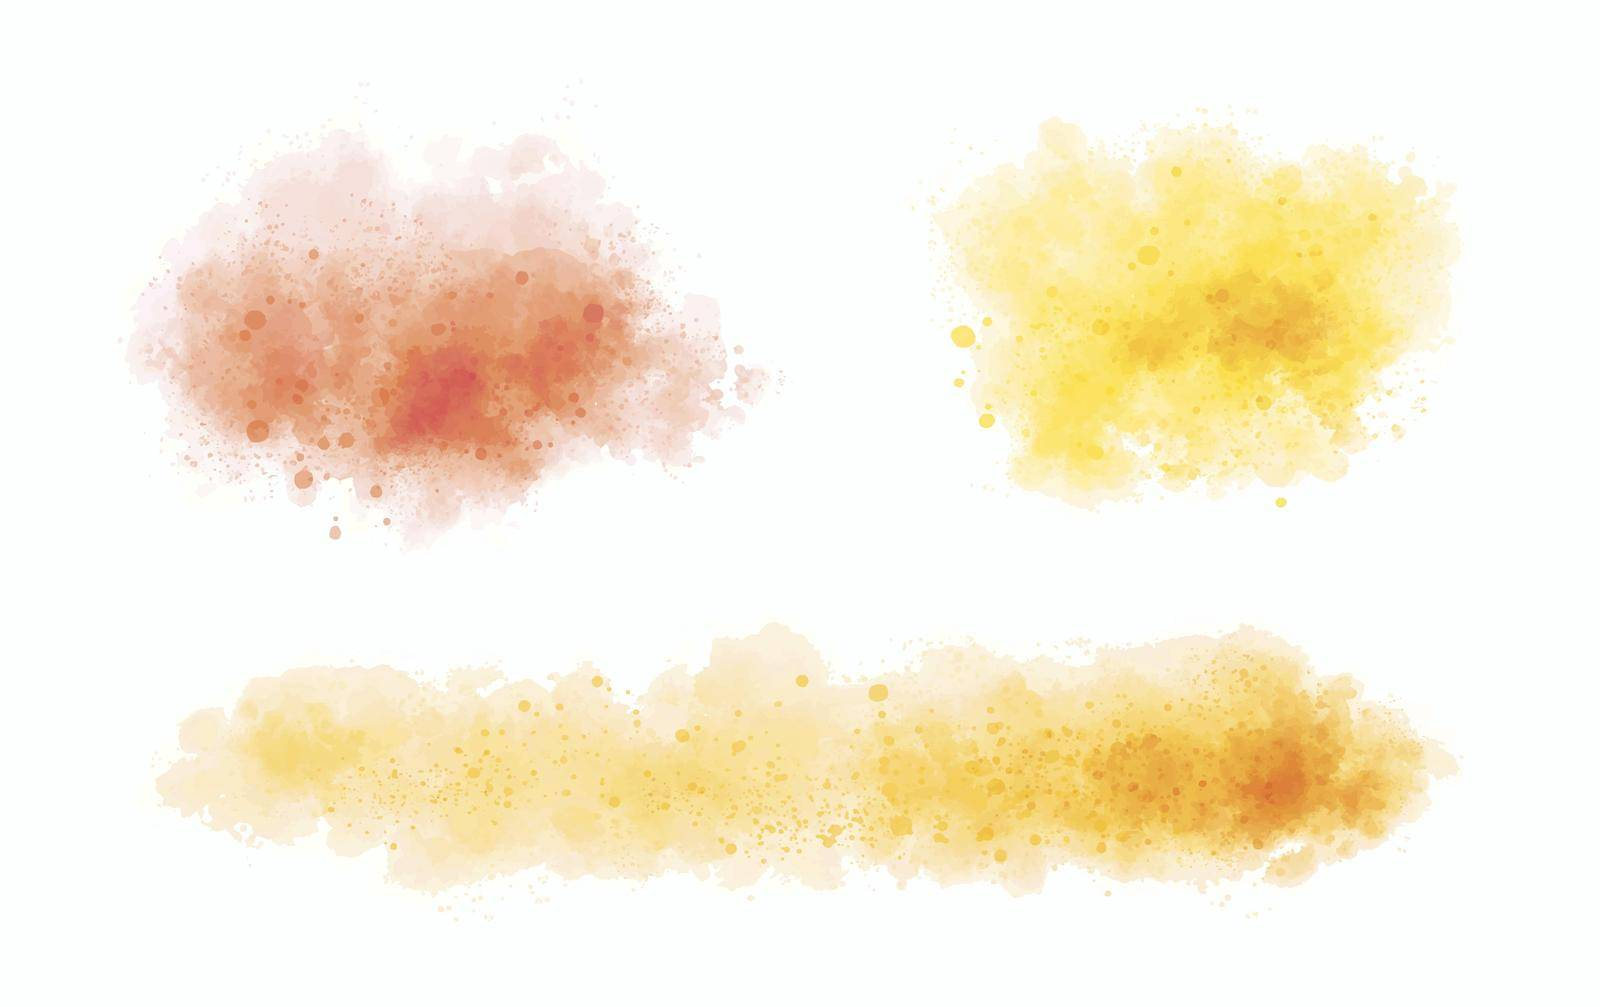 Watercolor on white background vector illustration by Myimagine